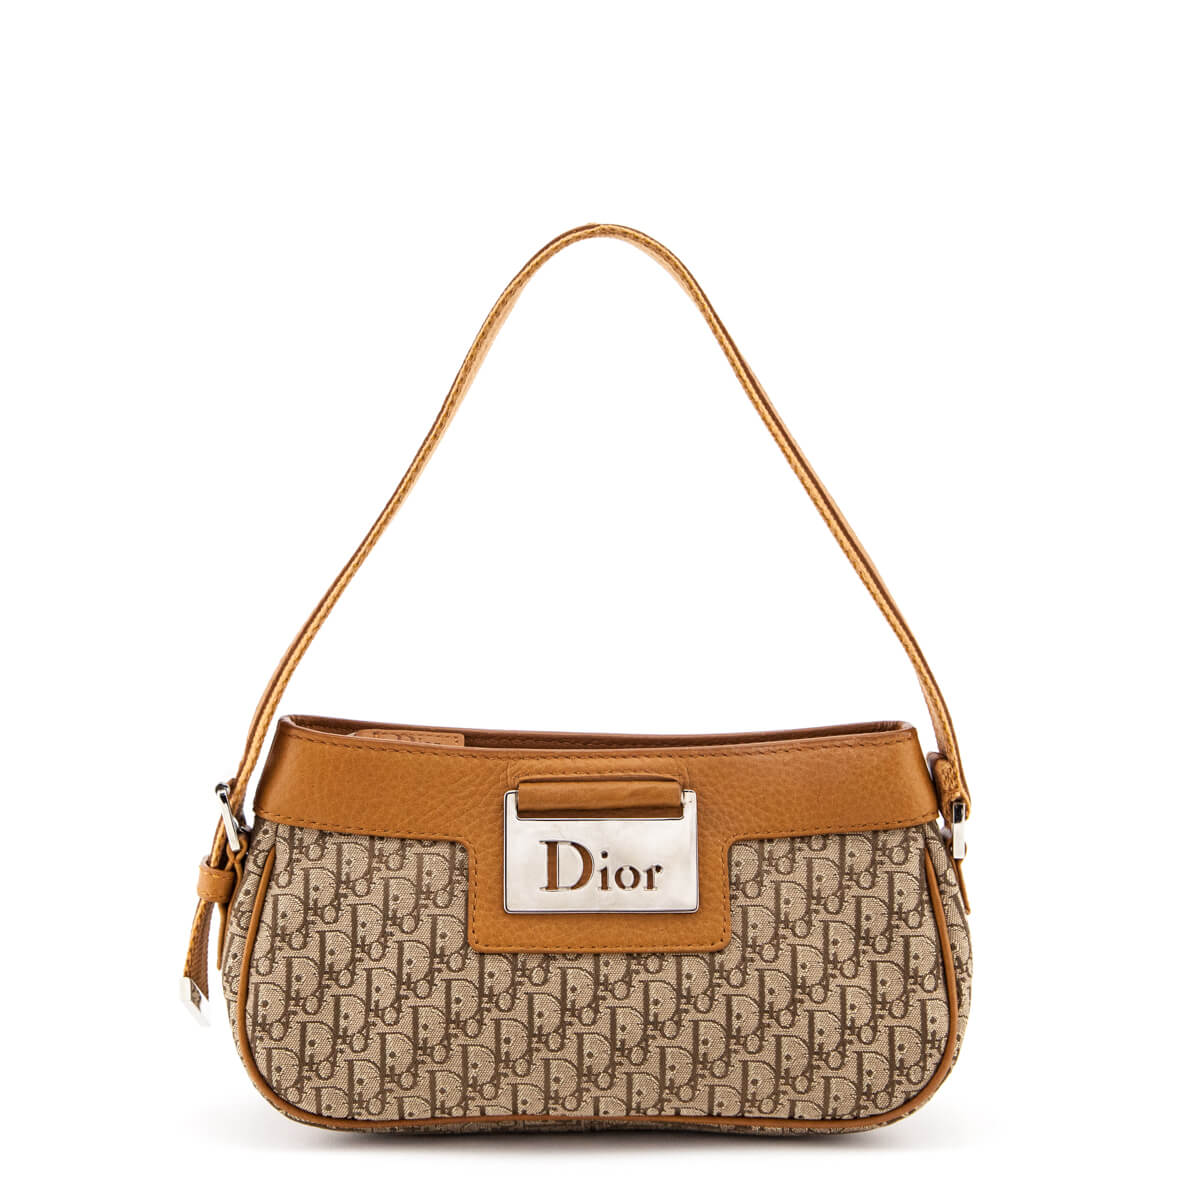 eb5ca11700 Dior Tan Diorissimo Leather-Trimmed Shoulder Bag - LOVE that BAG - Preowned  Authentic Designer ...